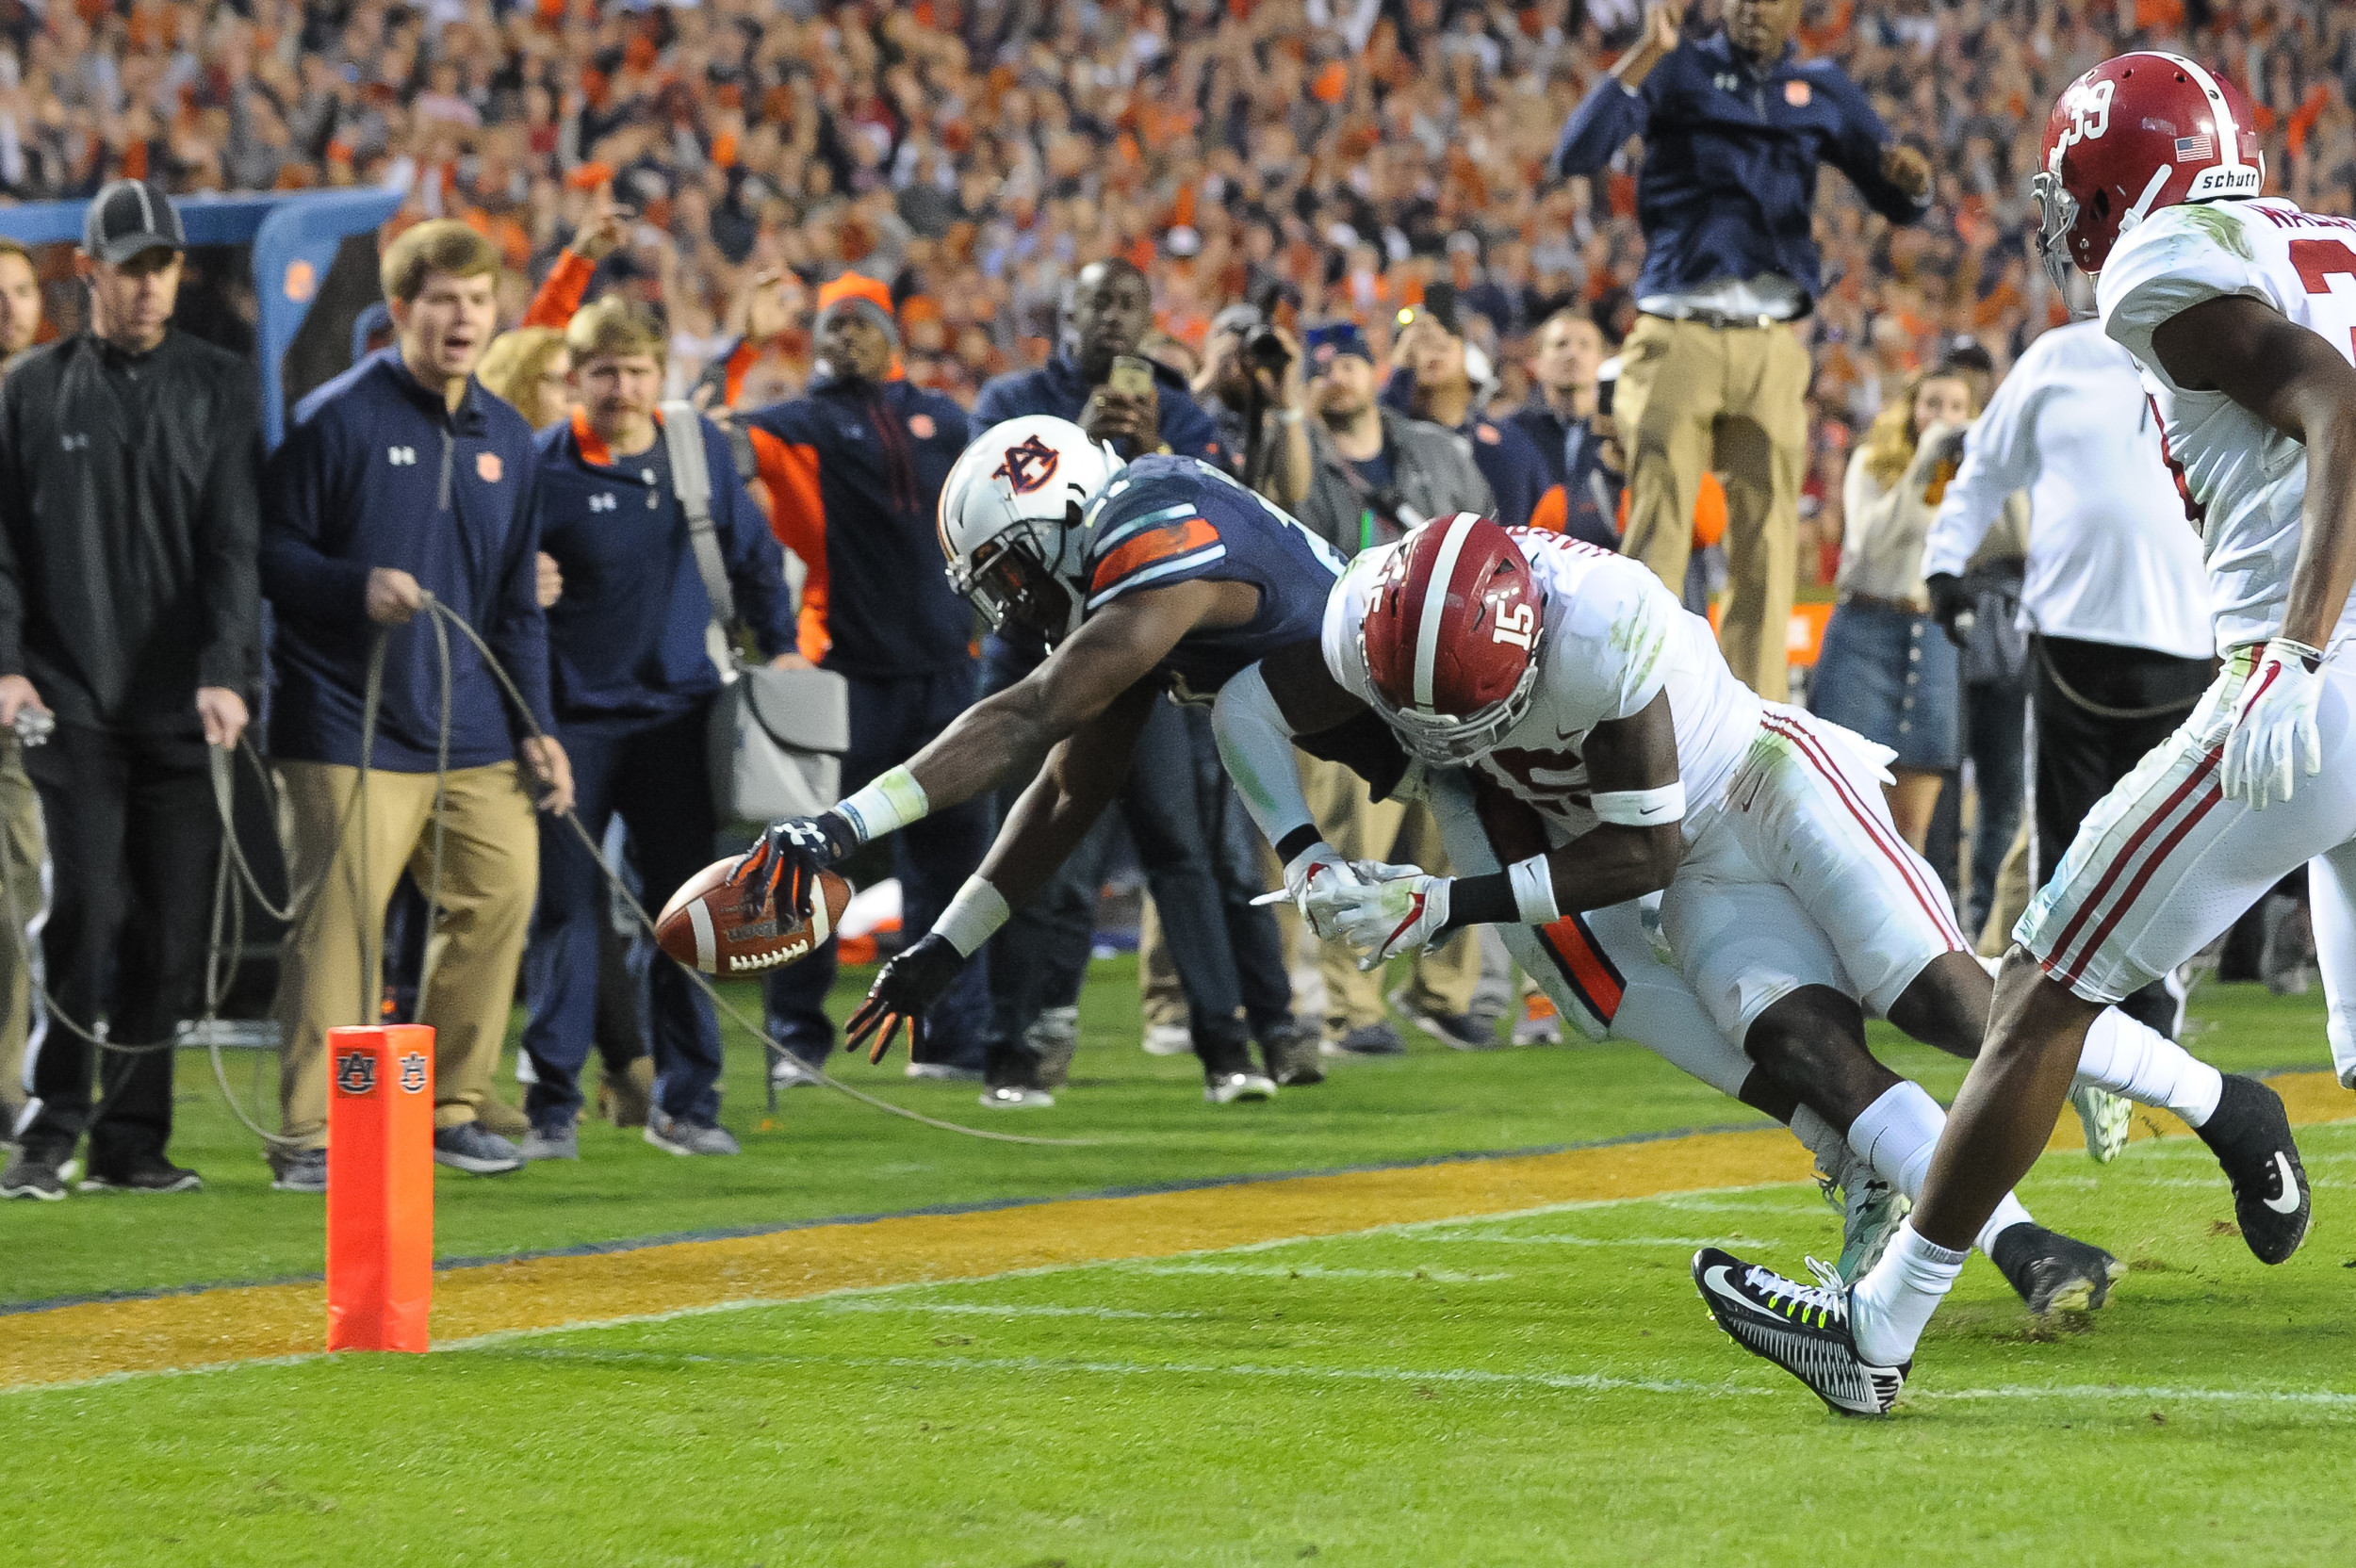 Auburn Tigers running back Kerryon Johnson (21) is knocked out of bounds short of the goal line by Alabama Crimson Tide defensive back Ronnie Harrison (15) during the second half of Saturday's game, at Jordan-Hare Stadium.